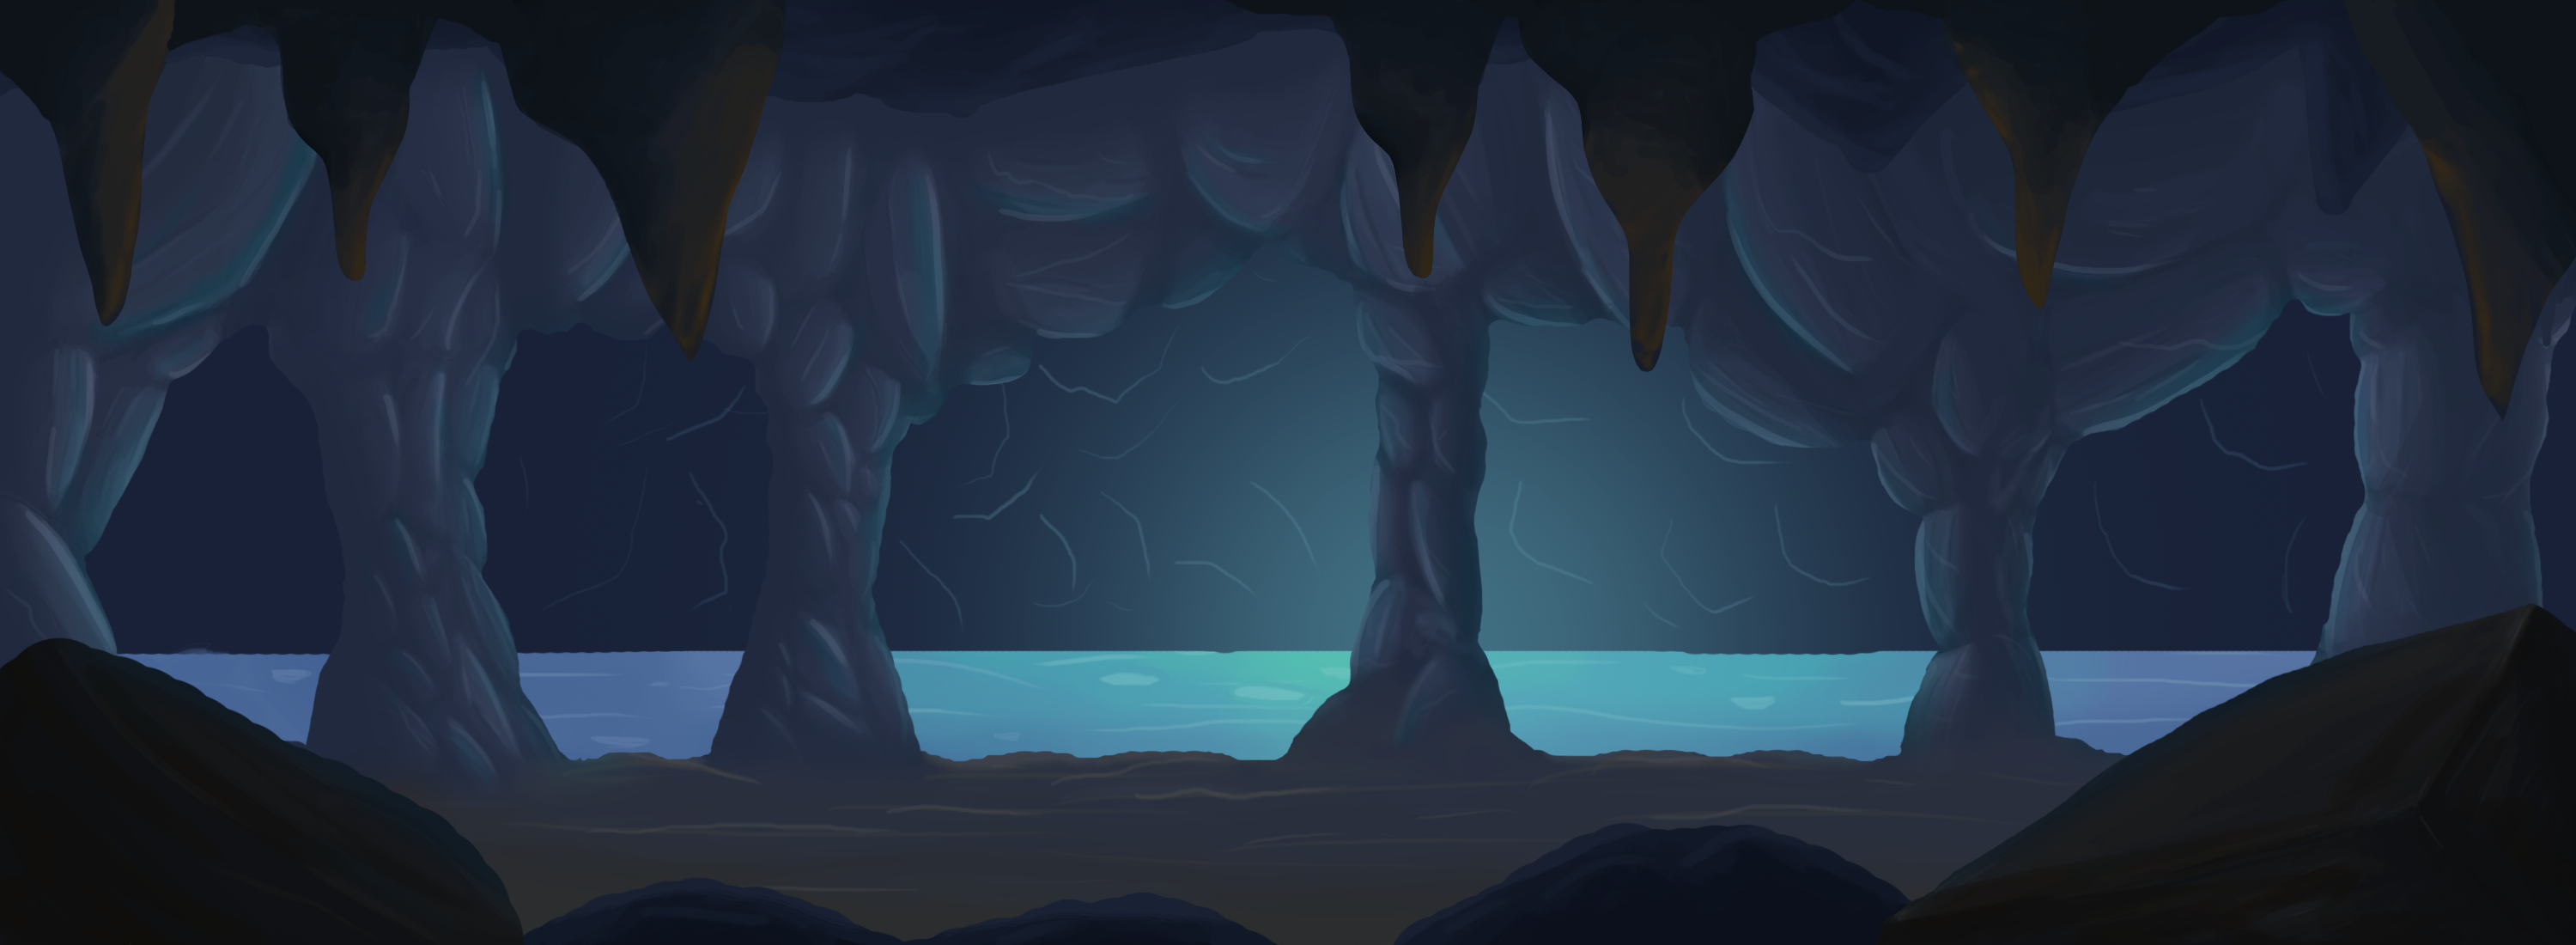 Beacon: Cave Background by CuteSbBoy on Newgrounds